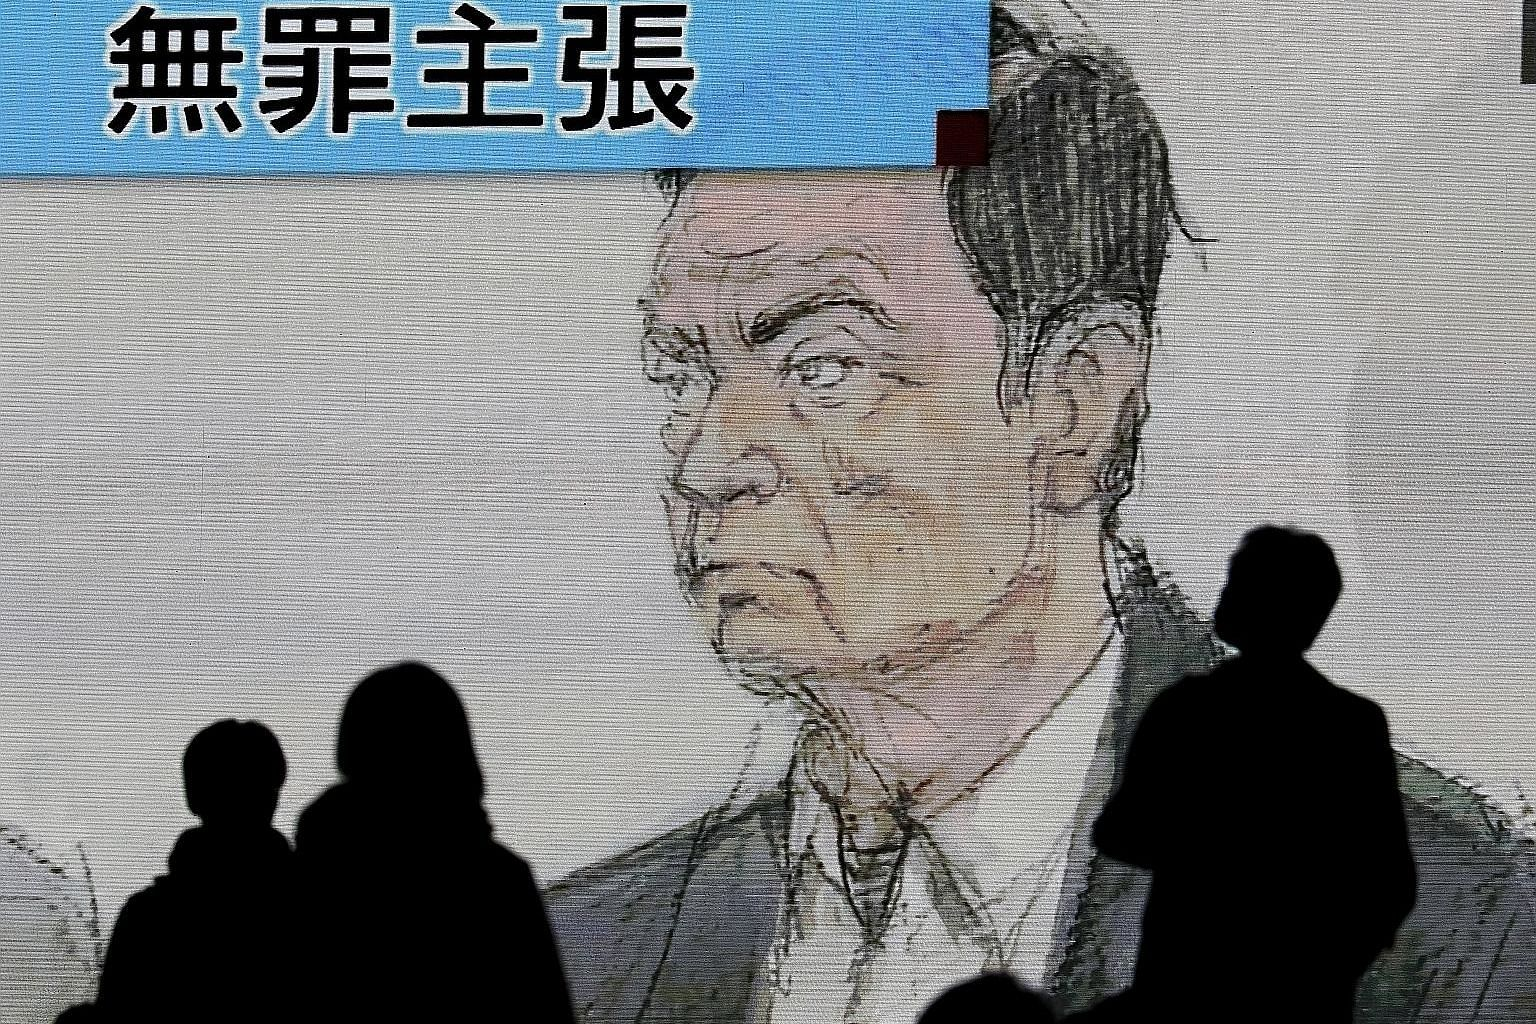 Pedestrians watching a news clip featuring ousted Nissan chairman Carlos Ghosn during his court appearance in Tokyo yesterday.